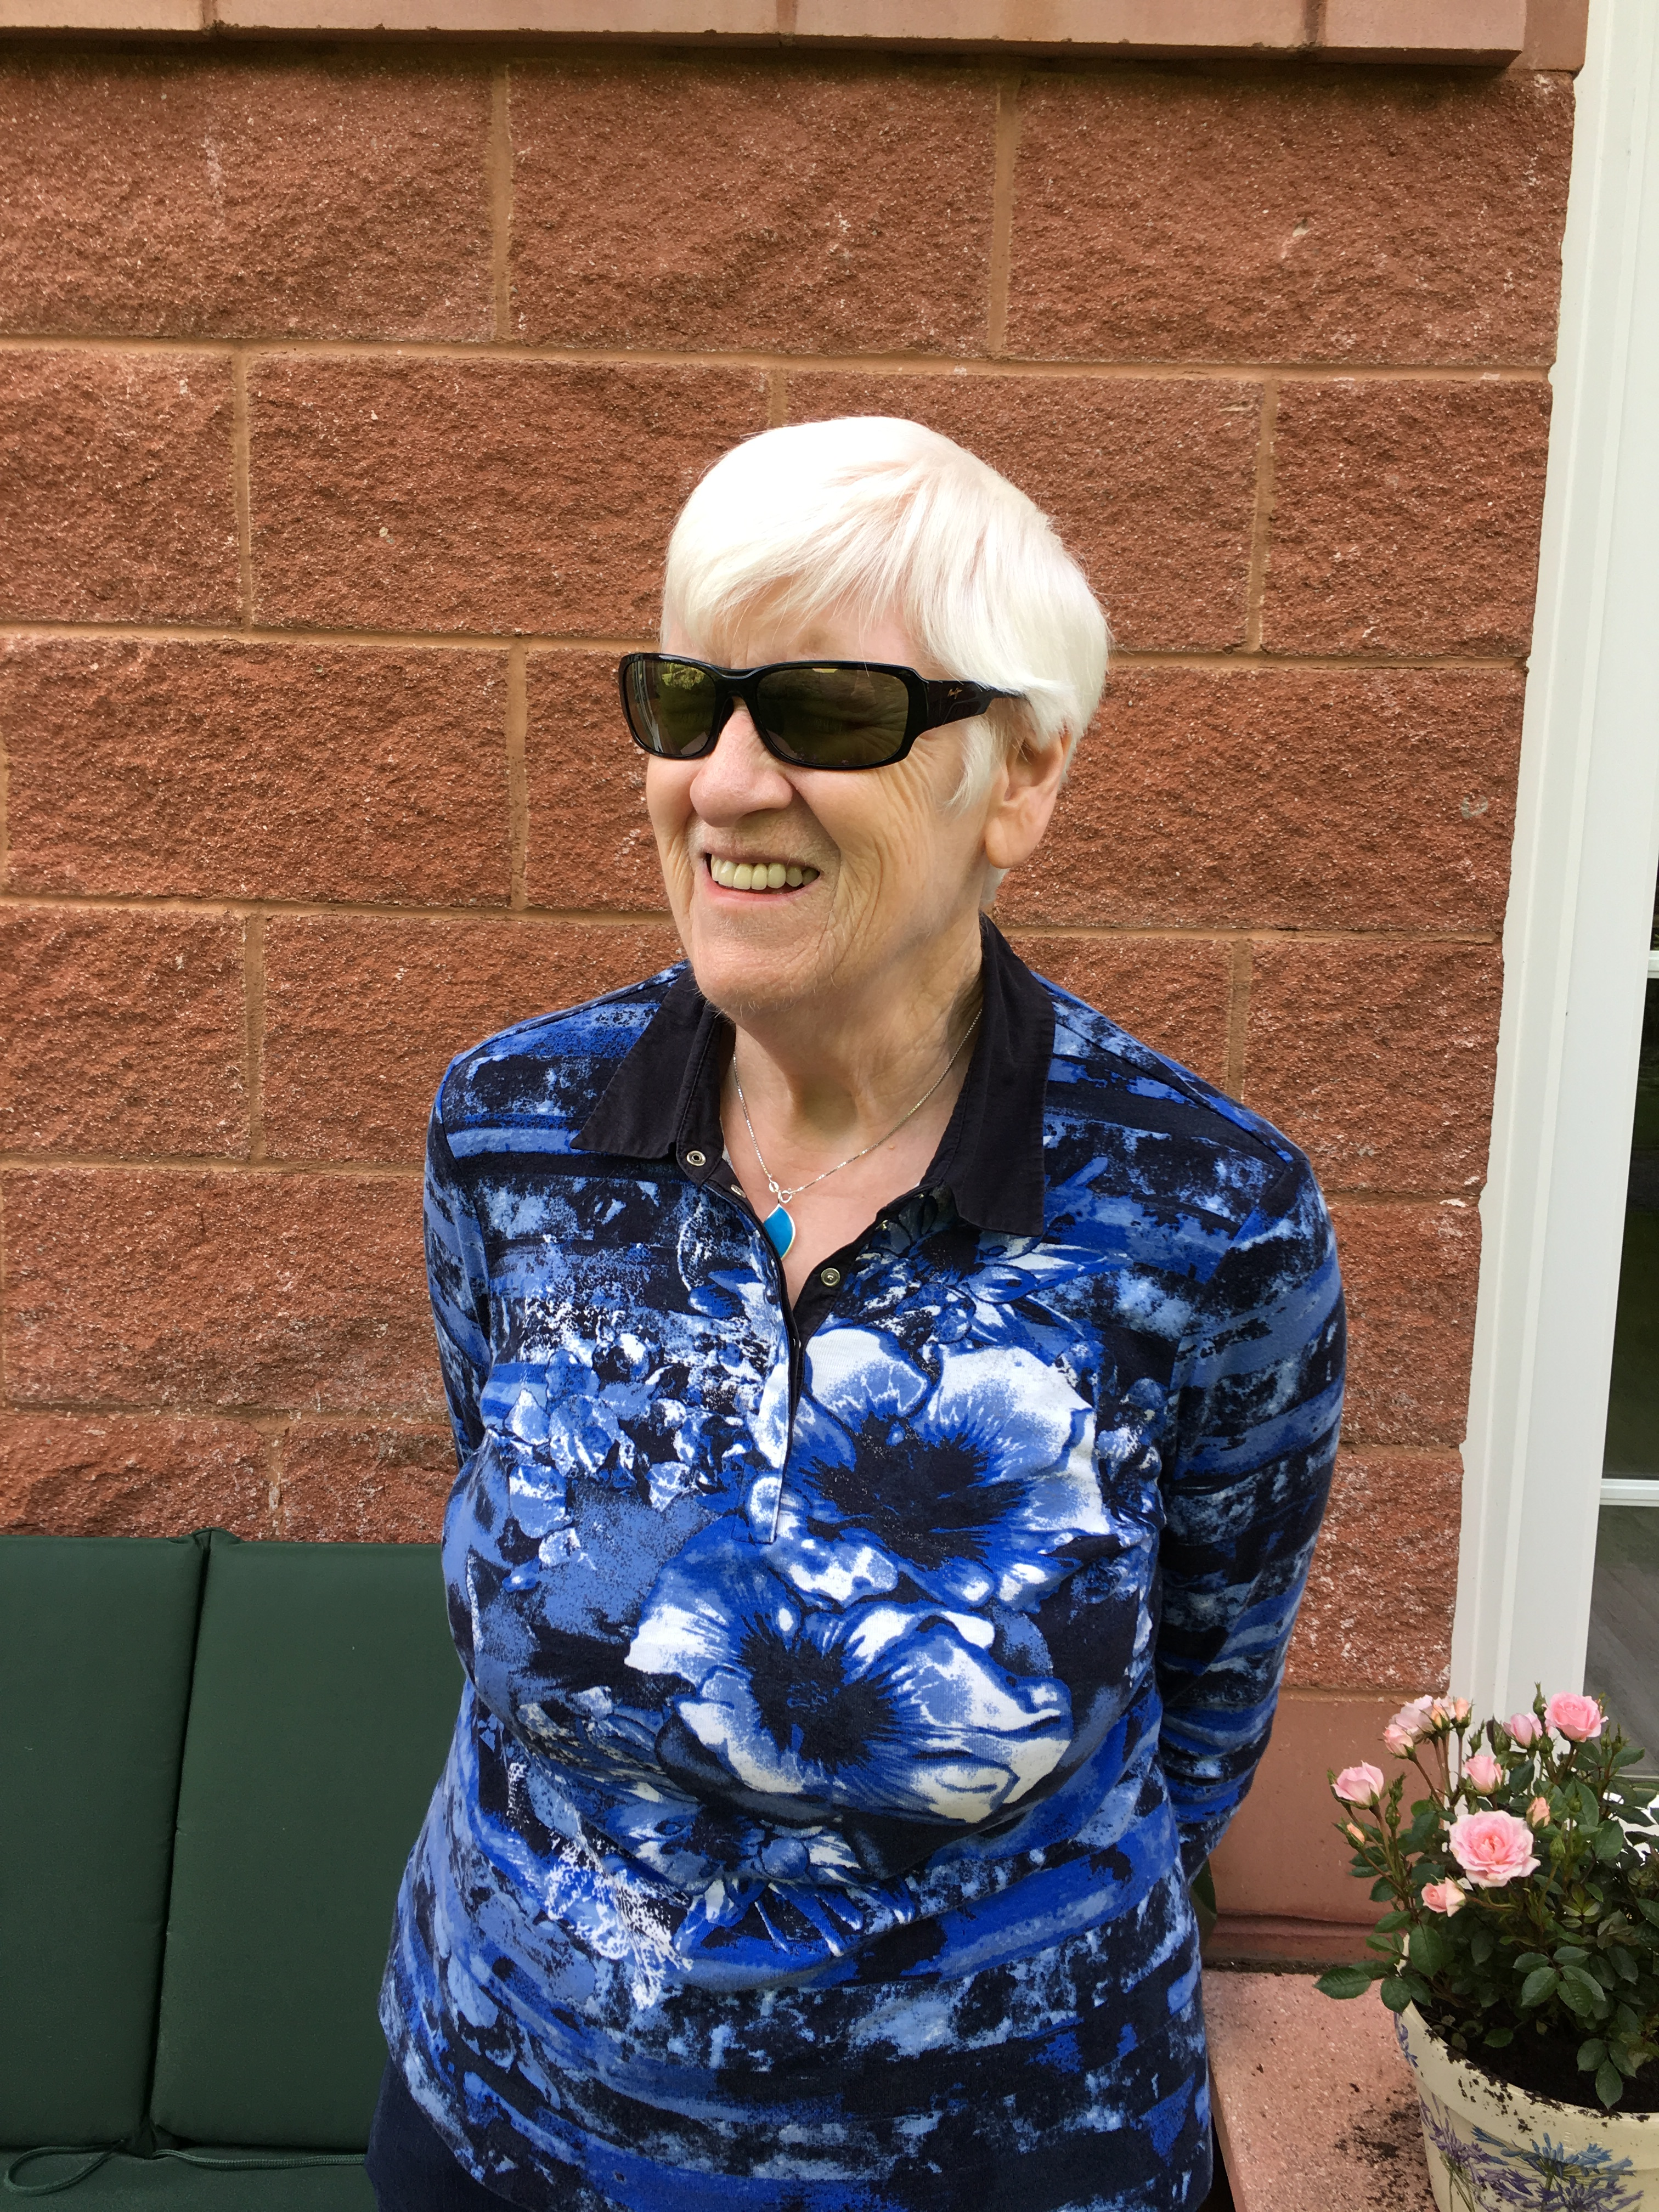 Liz, a lady with white hair and dark glasses smiling and wearing a blue blouse